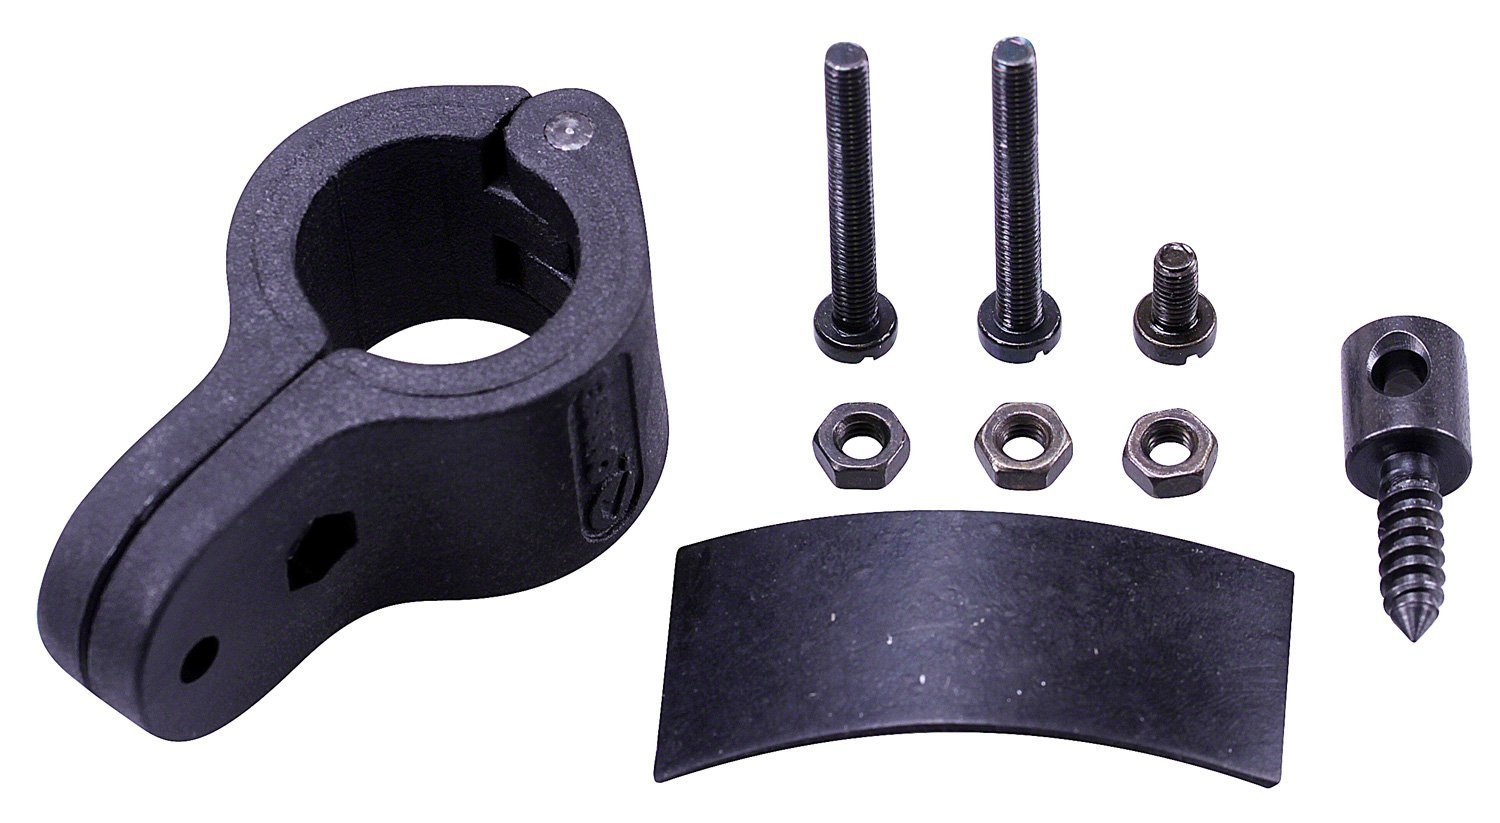 Gamo BSA Air Rifle Sling for gas or spring air rifles Includes all fittings or screws into the butt. The butt fixing fits on the clip if you have one